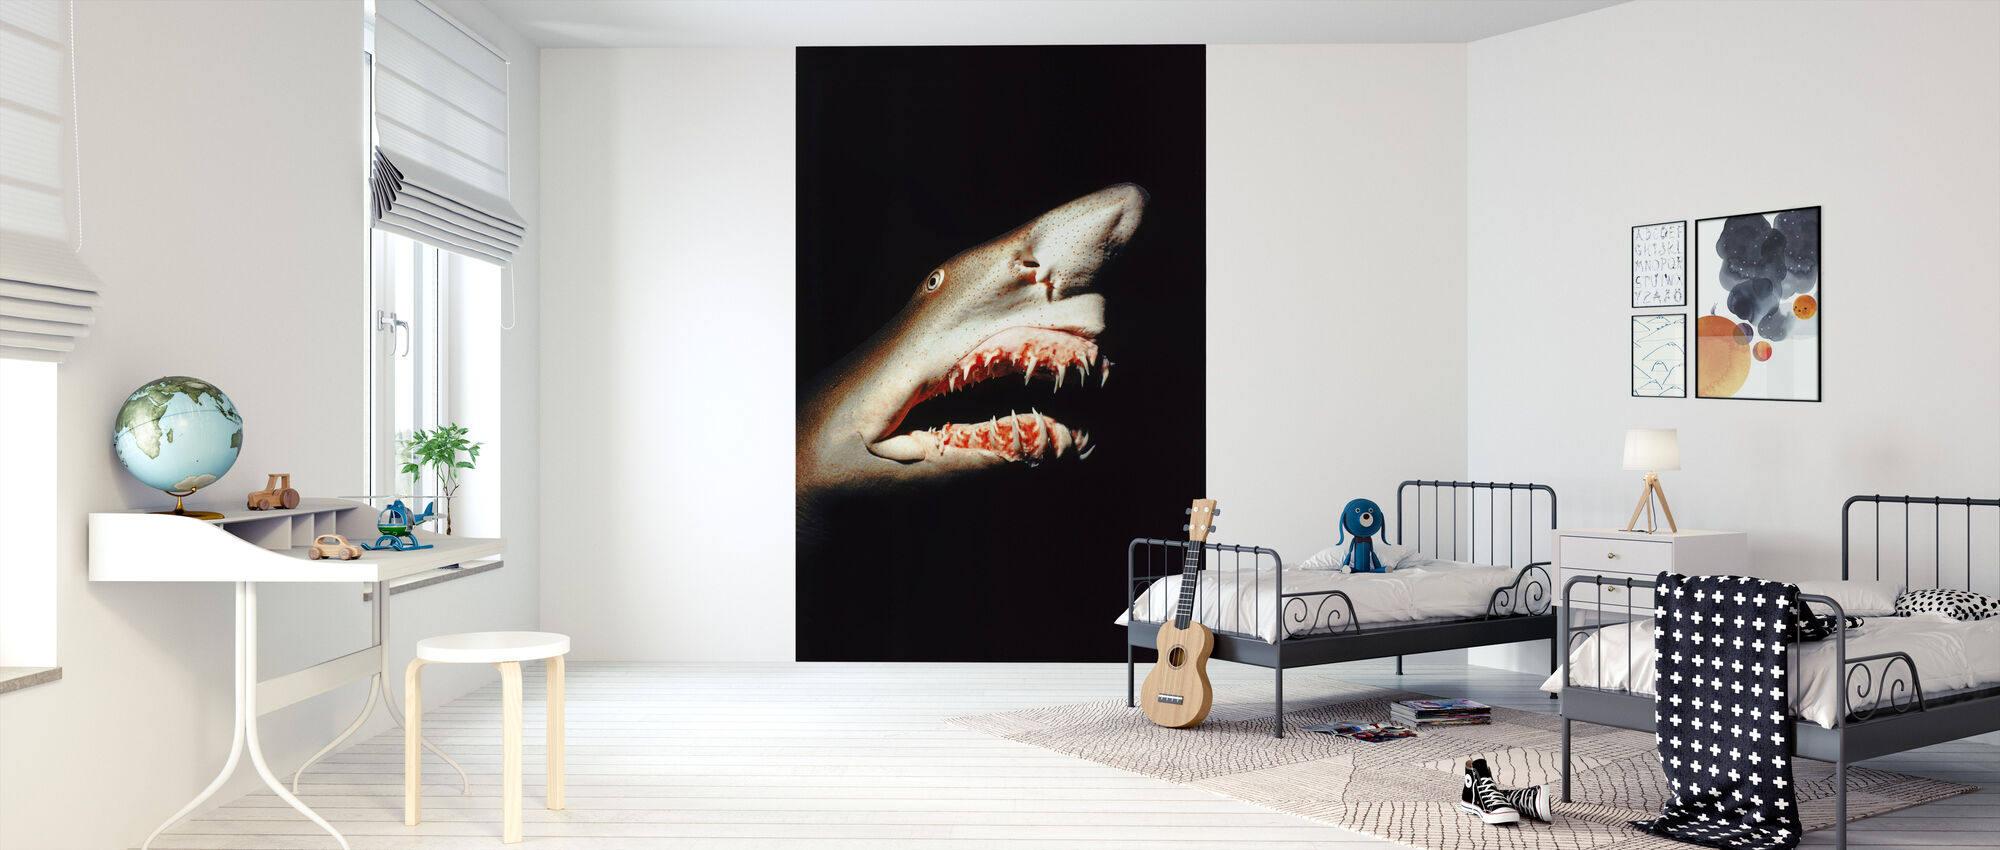 Shark - Wallpaper - Kids Room